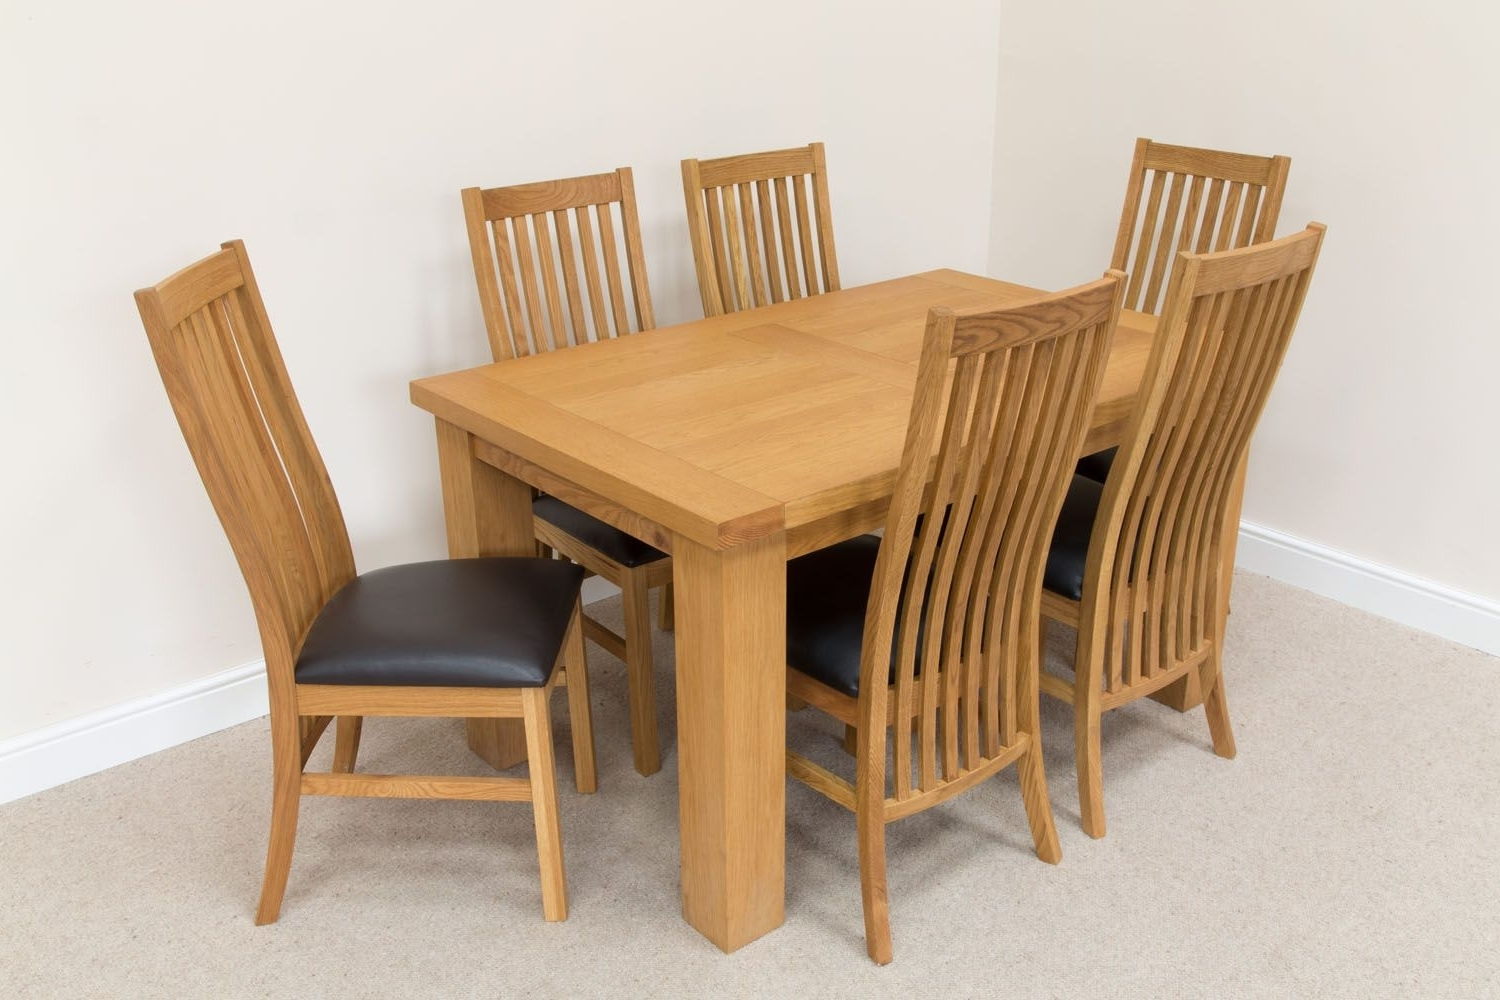 6 Seater Oak Dining Set Throughout Oak Dining Tables With 6 Chairs (Gallery 11 of 25)